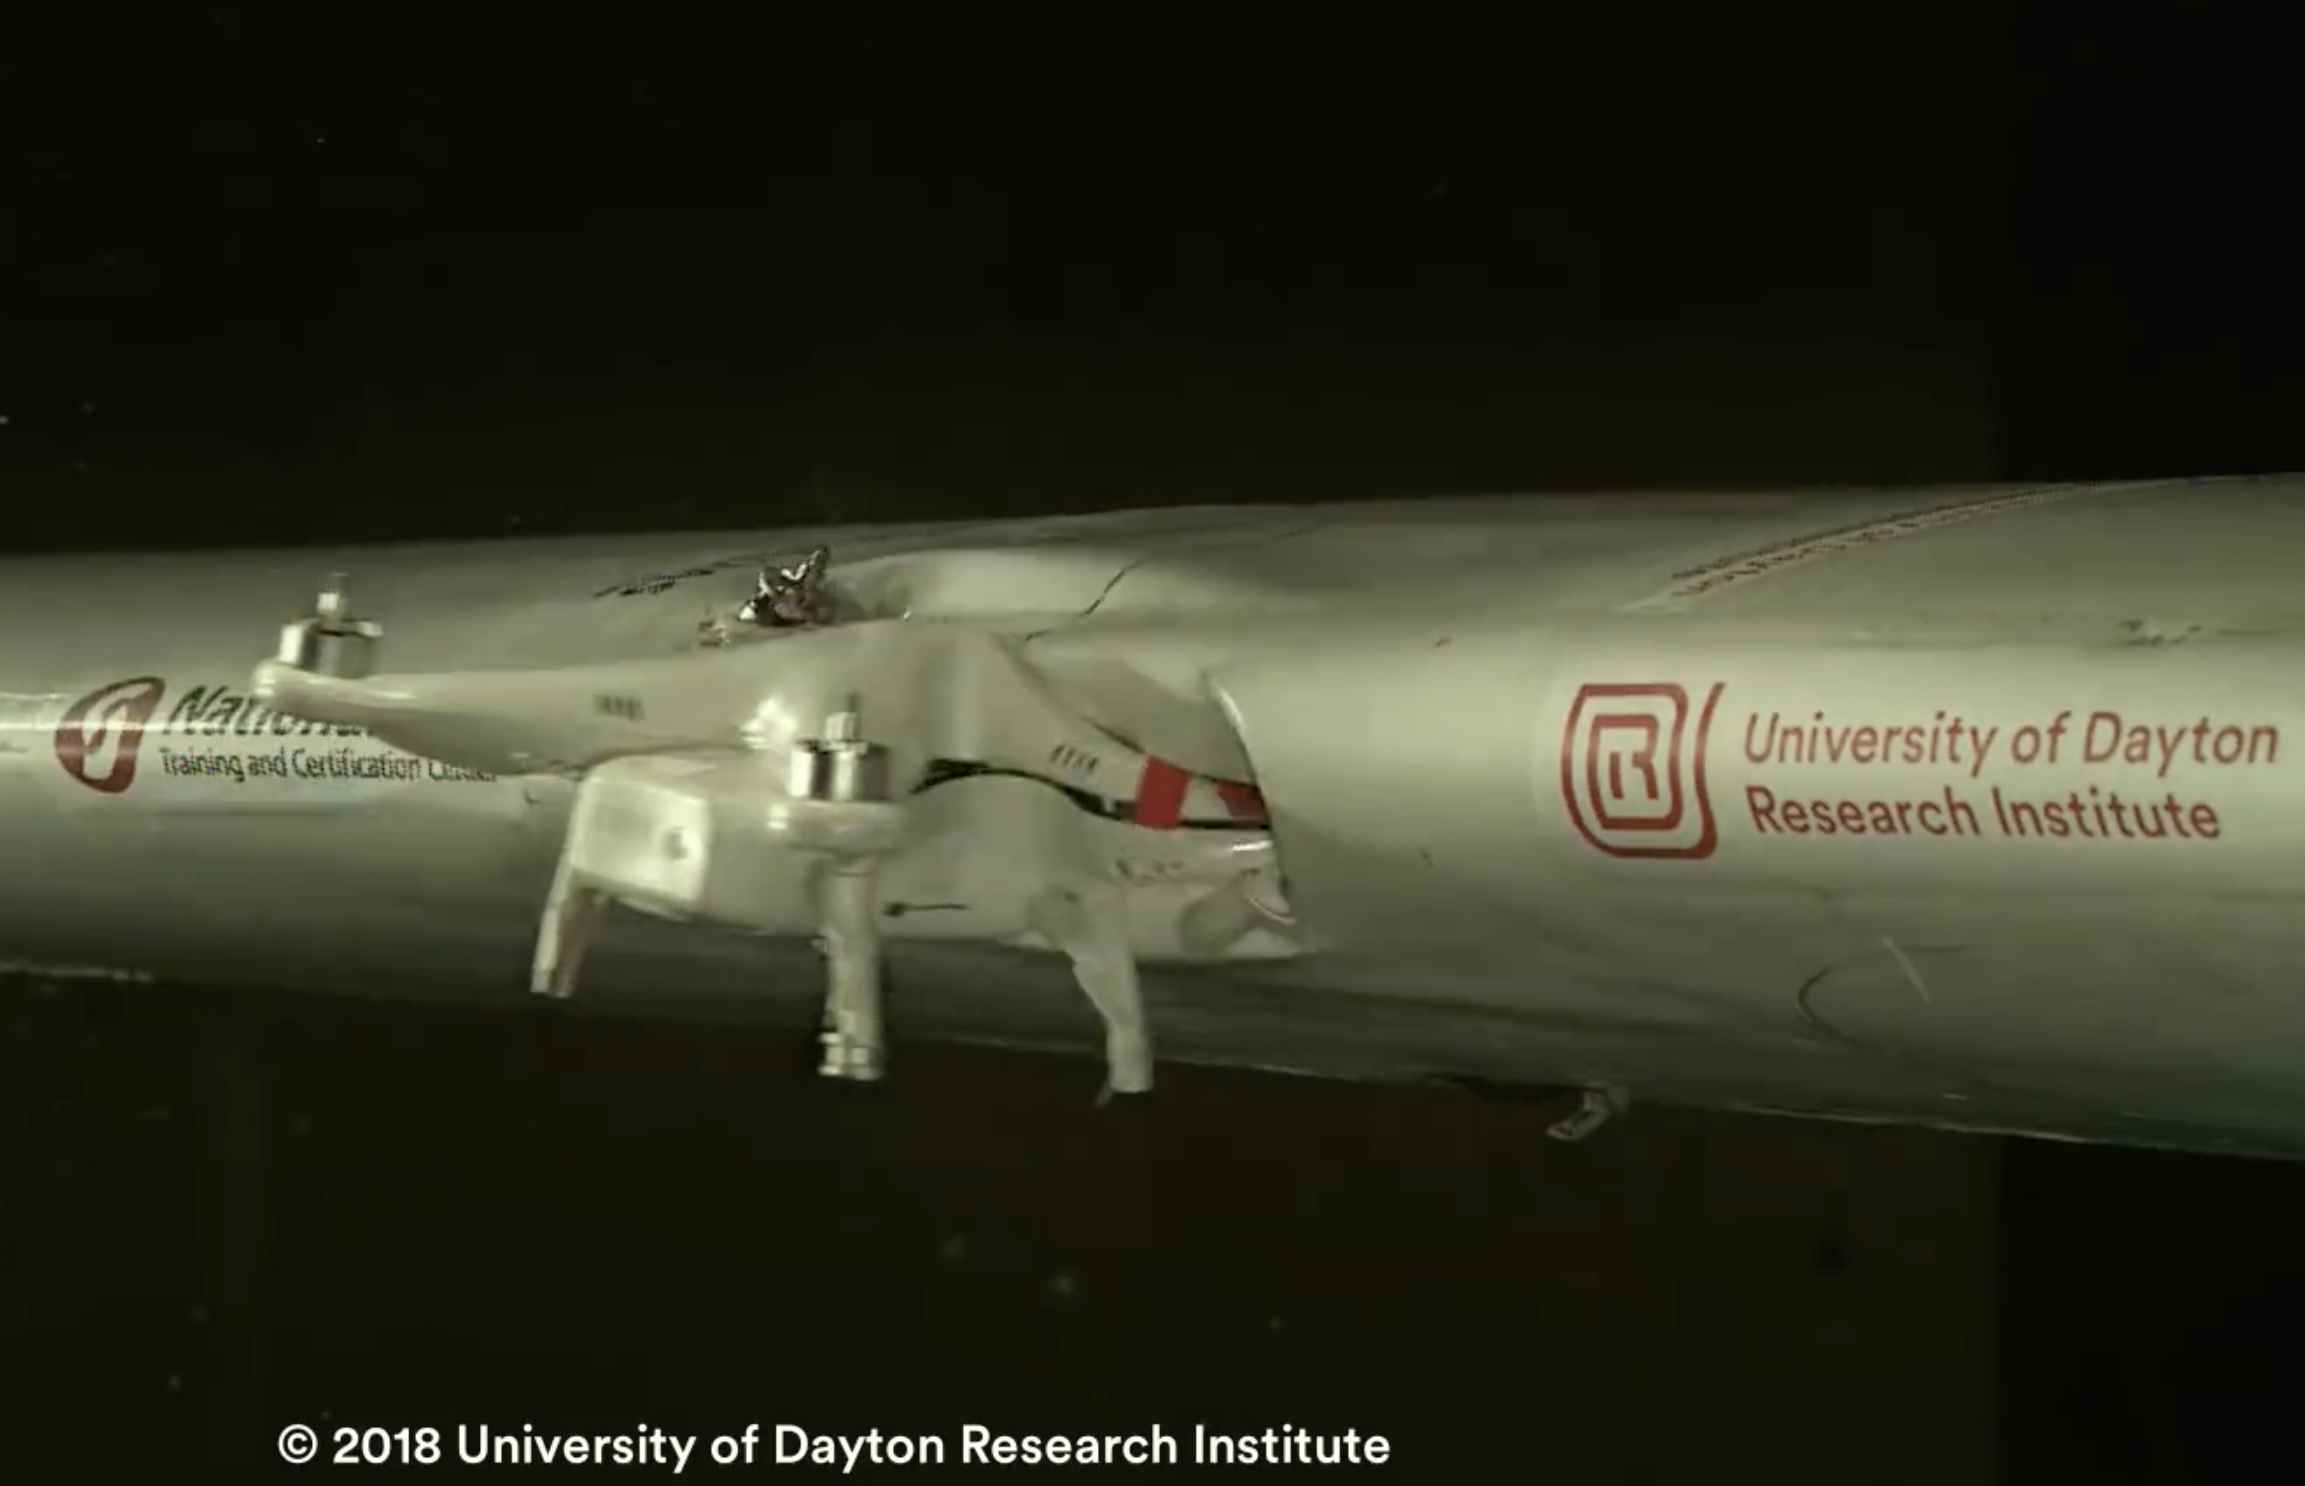 drone-crash-airplane-wing-collision-test-universityofdaytonresearchinstitute.png